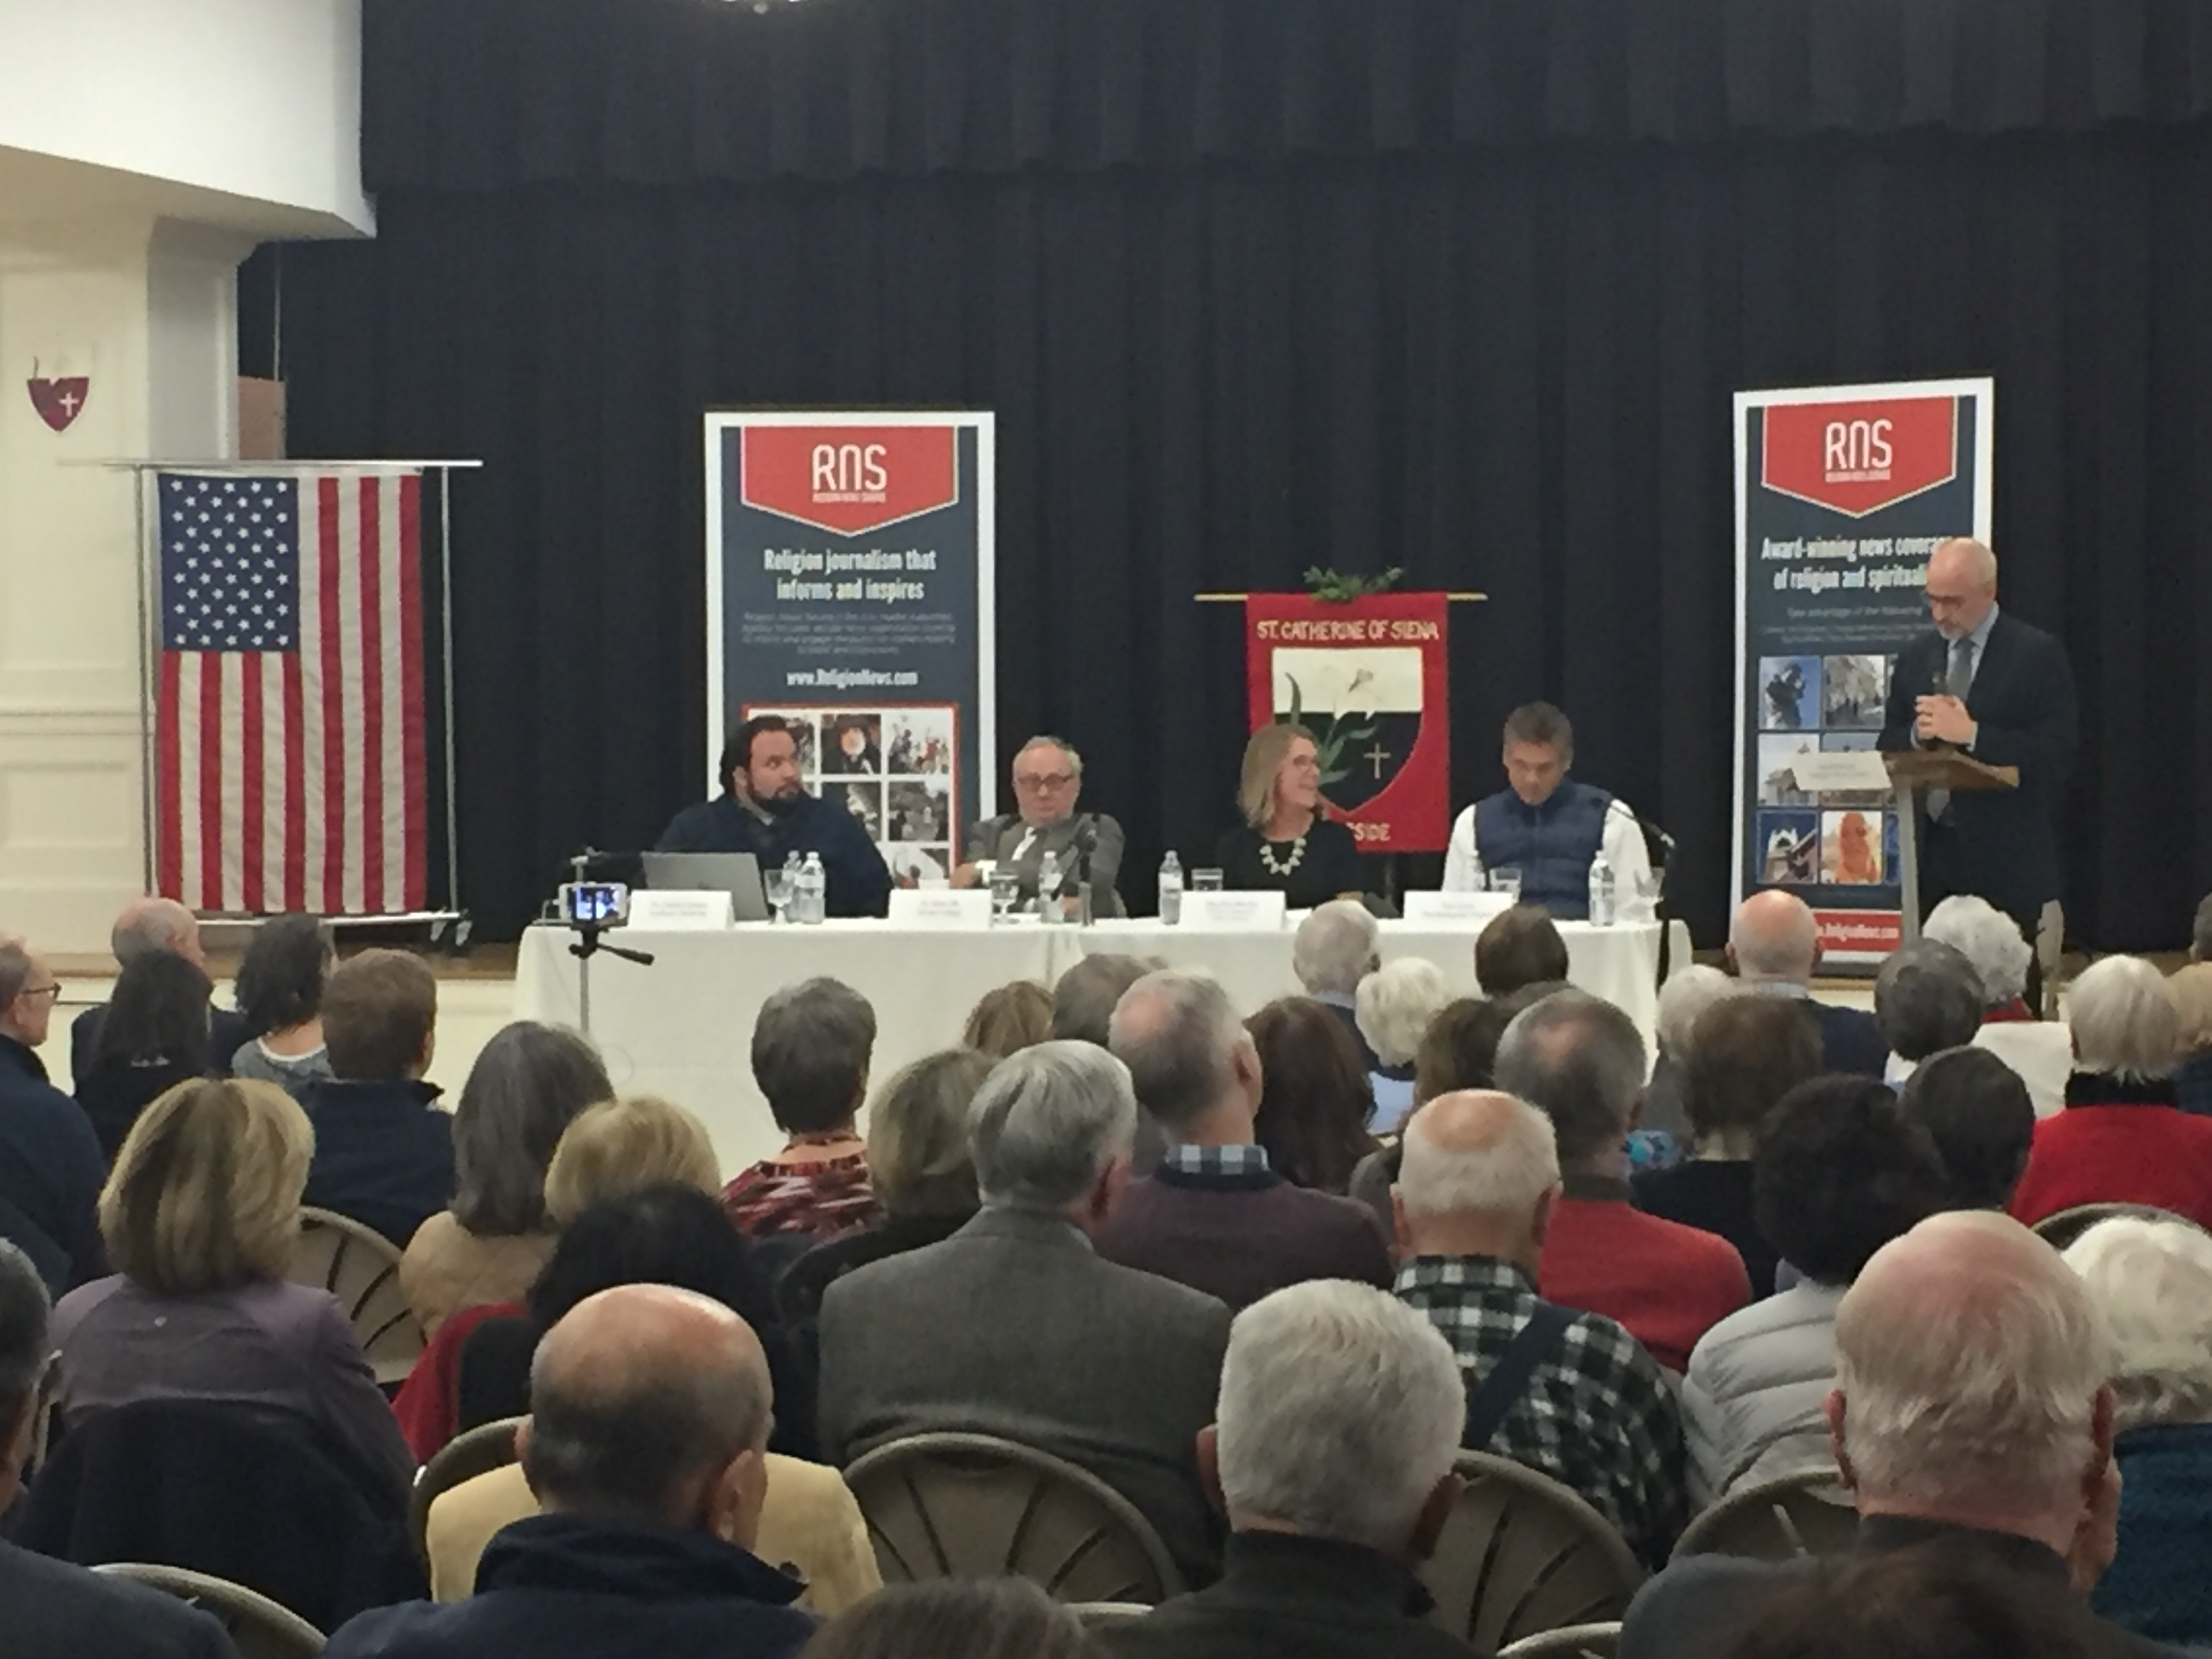 """RNS national reporter David Gibson introduces the expert panel titled, """"Election Aftermath: Faith & the Common Good, including (L-R) Dr. Charlie Camosy, Dr. Mark Silk, MaryAnn Murtha and Tom Scott, co-sponsored by the Religion News Service and St. Catherine of Siena Parish, Riverside, Conn."""